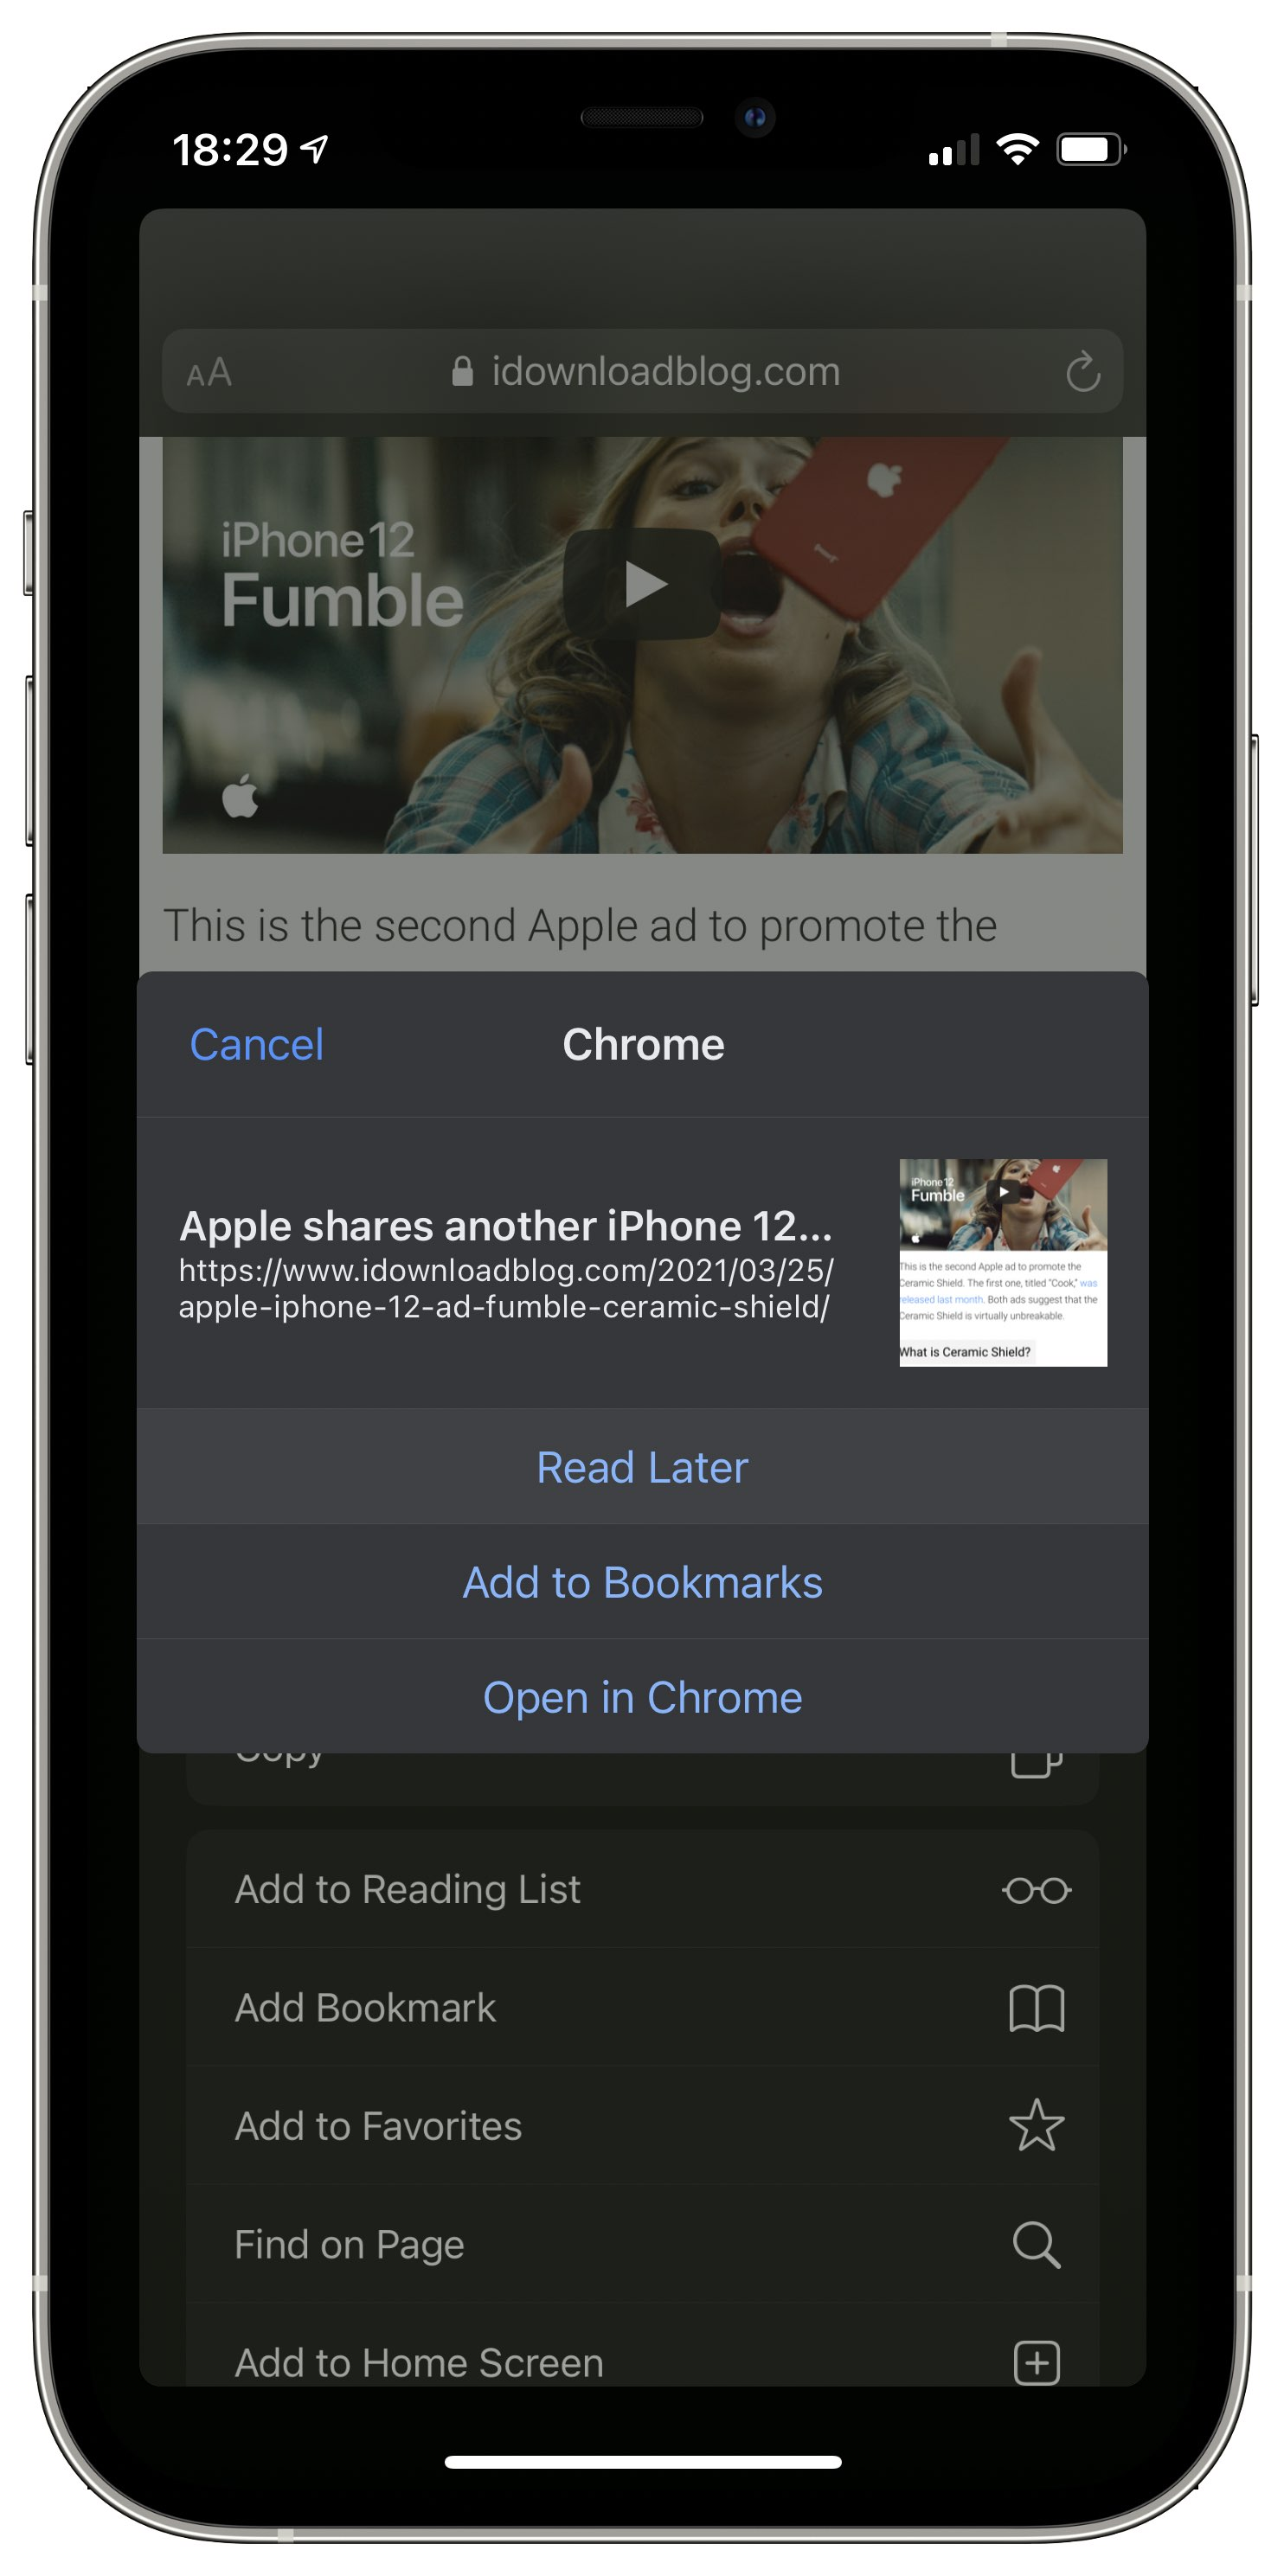 An iOS 14 screenshot illustrating sharing a Safari webpage with the Google Chrome browser with the Add to Reading List option on the iPhone